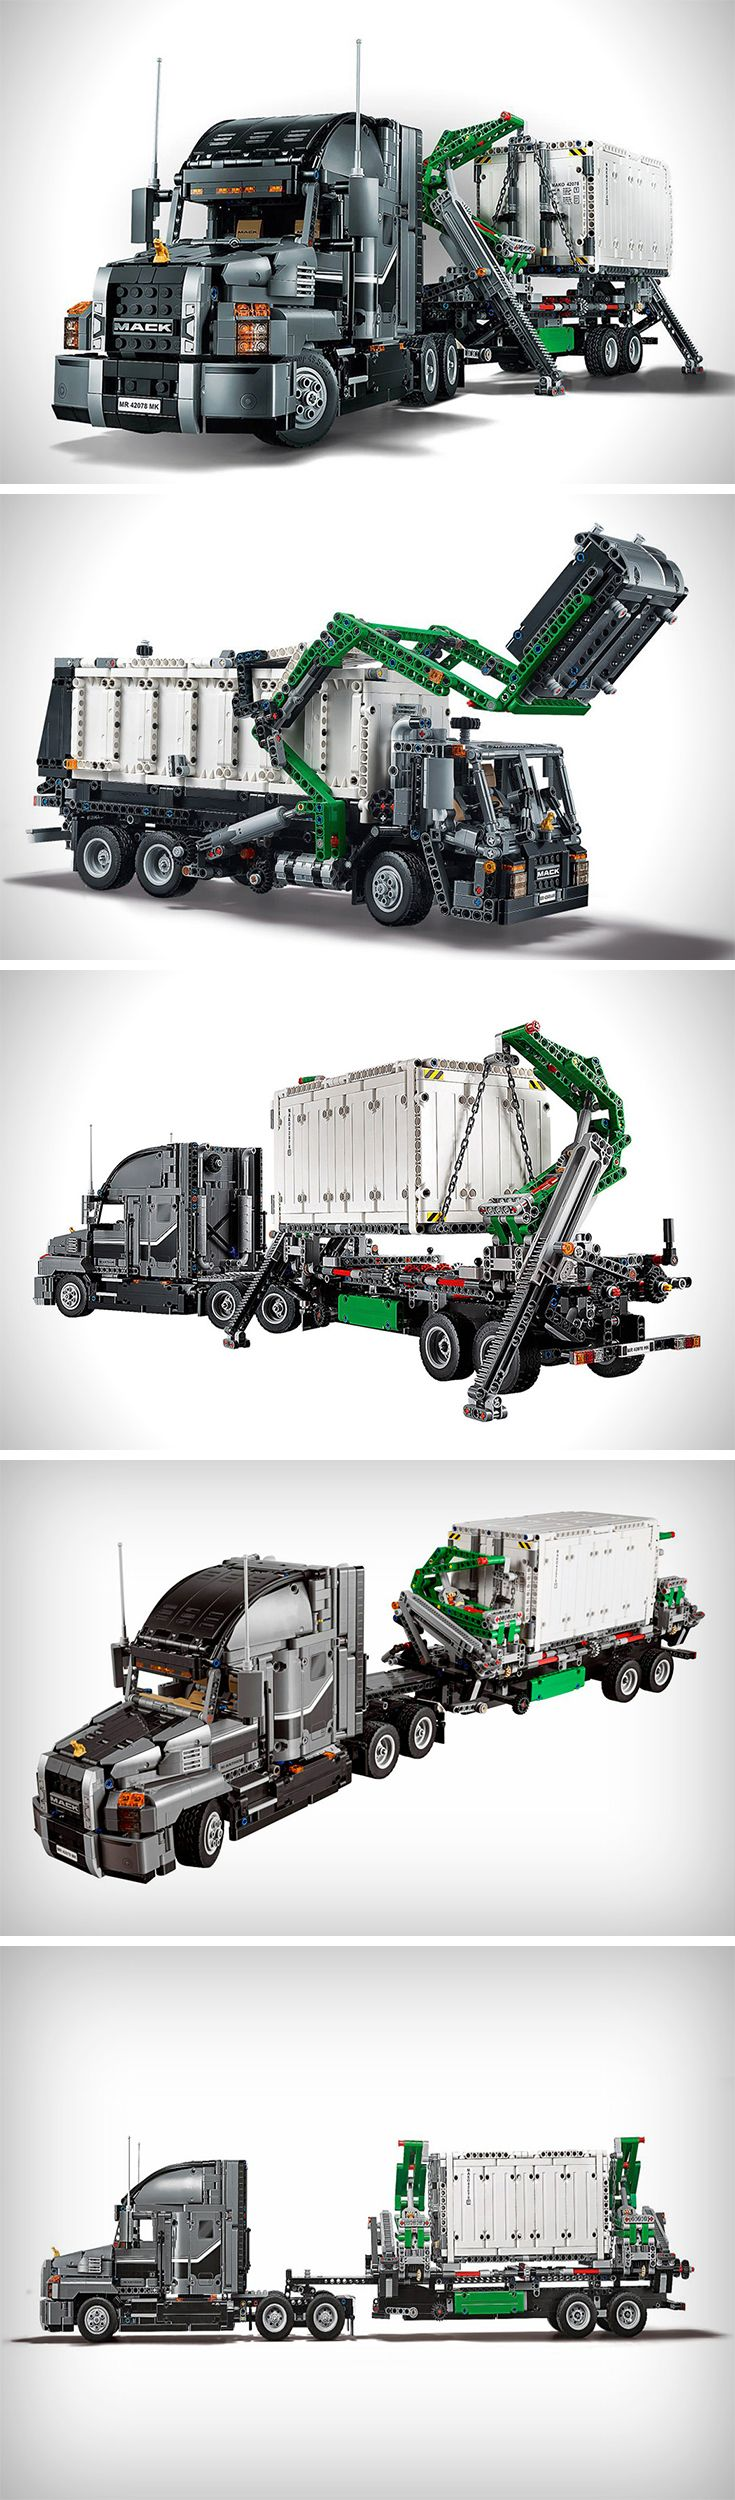 There are some remarkable models (mostly automotive) to be built that are without a doubt shelf-worthy once completed. With that, comes another addition recently announced in the form of the two-in-one Mack Truck Set. So what do I mean by two-in-one? Well, the original truck-and-trailer can be assembled, then disassembled and rearranged to form a Mack Dump Truck from the same pieces.